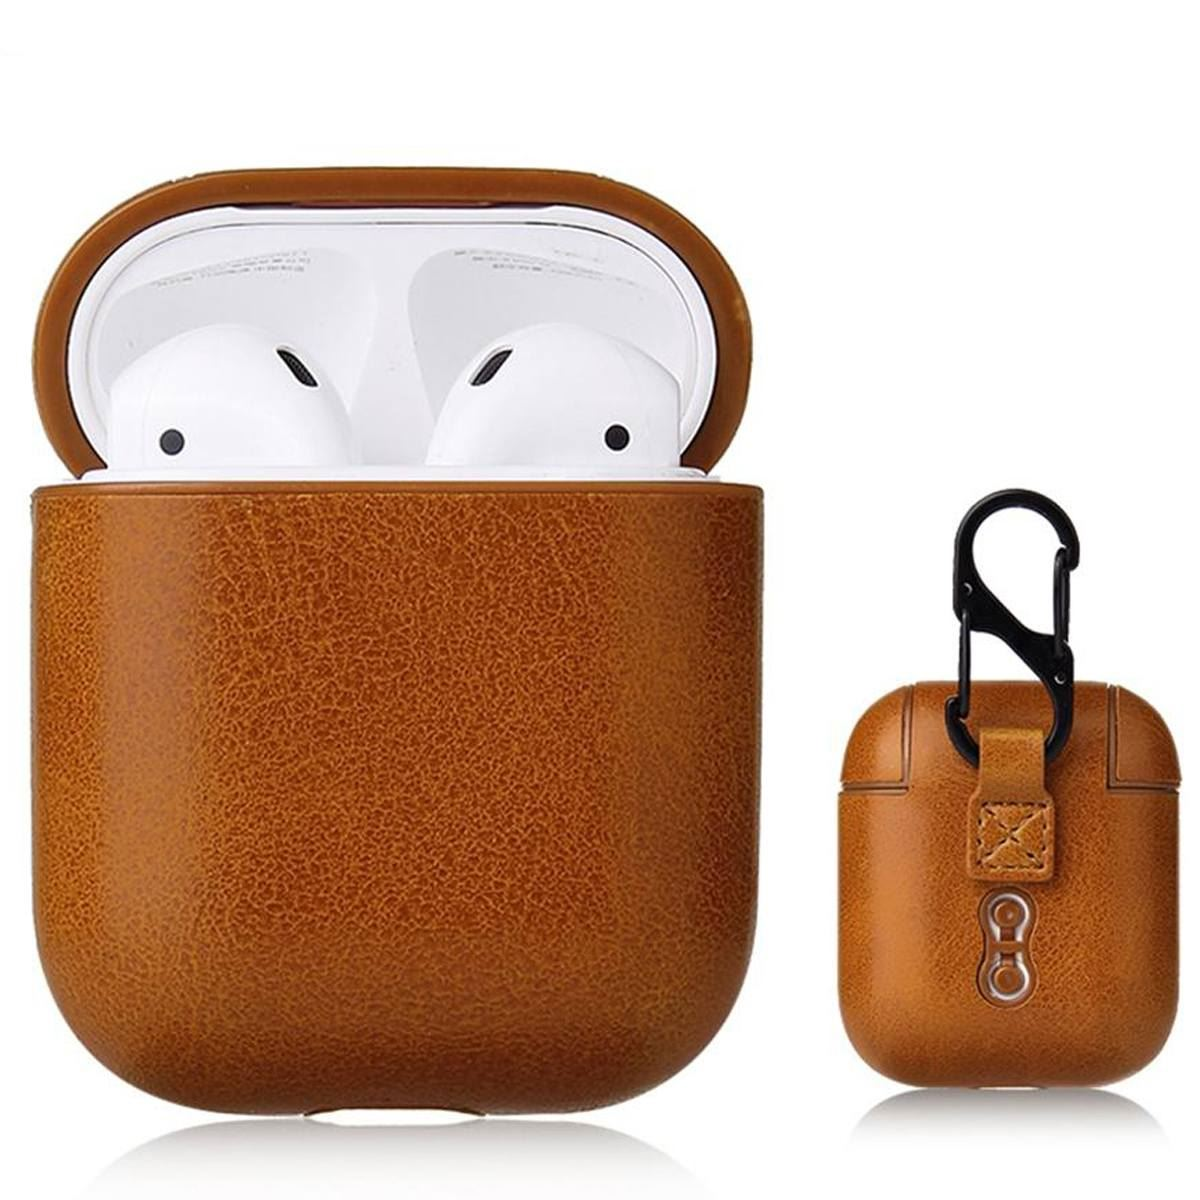 Case-For-Apple-Airpods-1-2-1st-2nd-Gen-Soft-Leather-Skin-Earphones-PU-Cover thumbnail 12